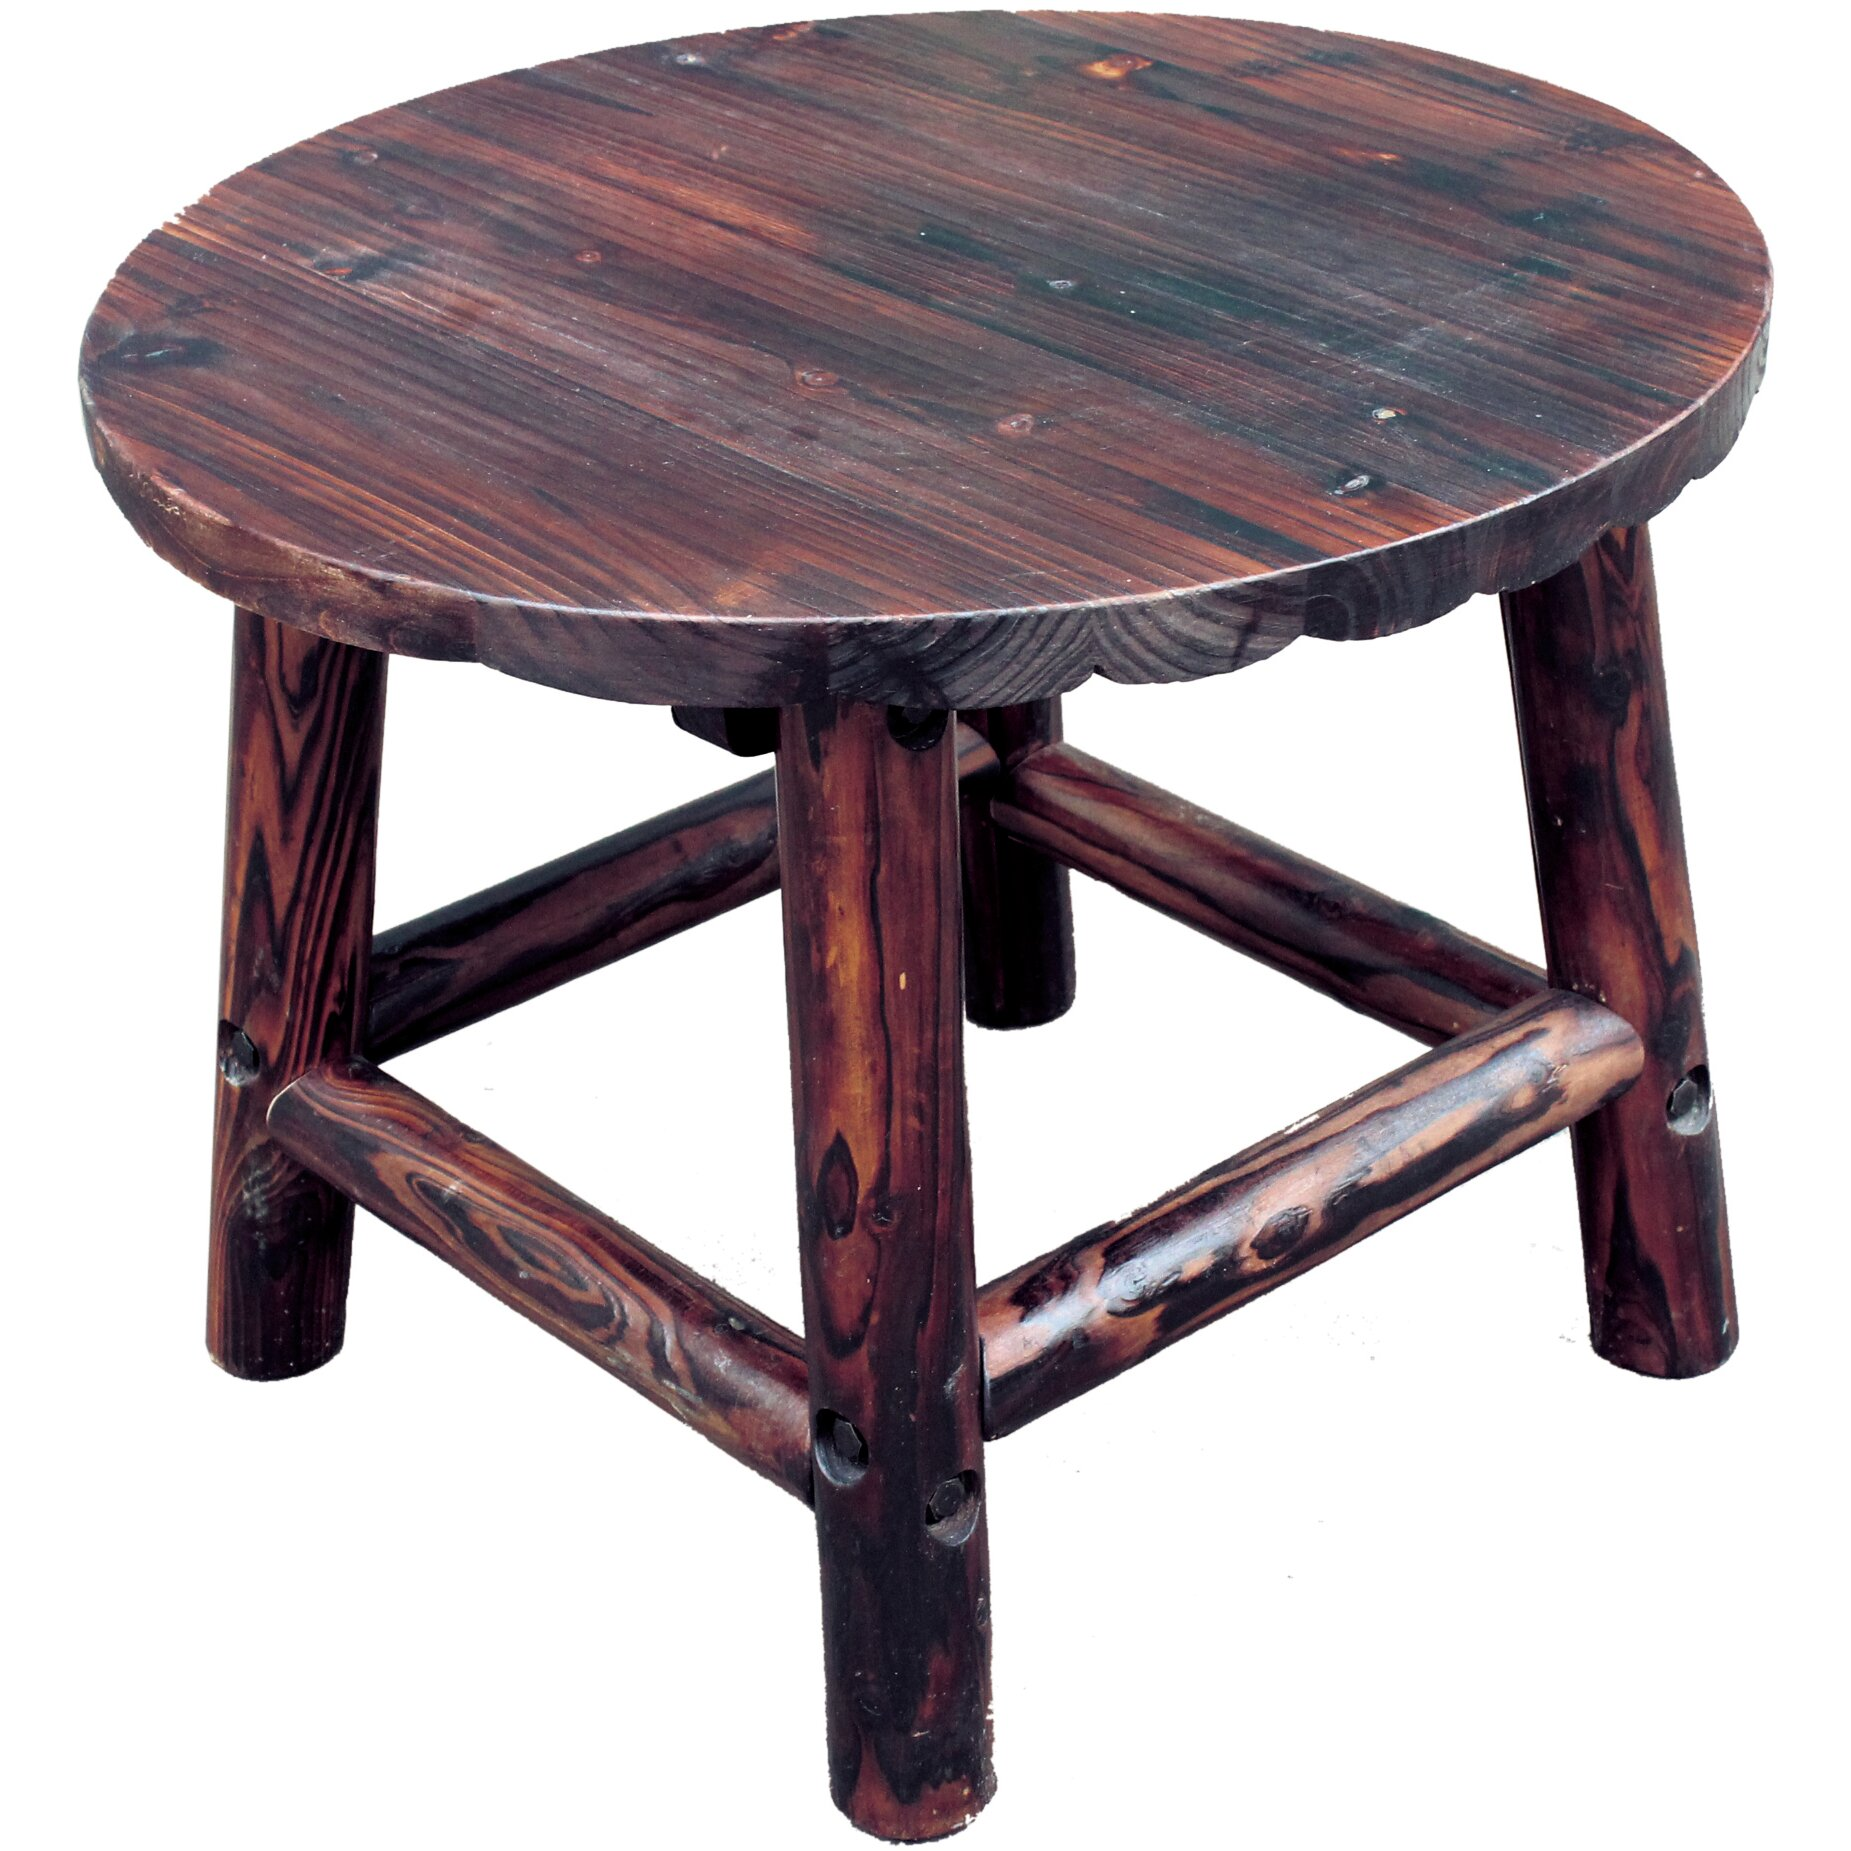 leighcountry char log round end table reviews wayfair. Black Bedroom Furniture Sets. Home Design Ideas